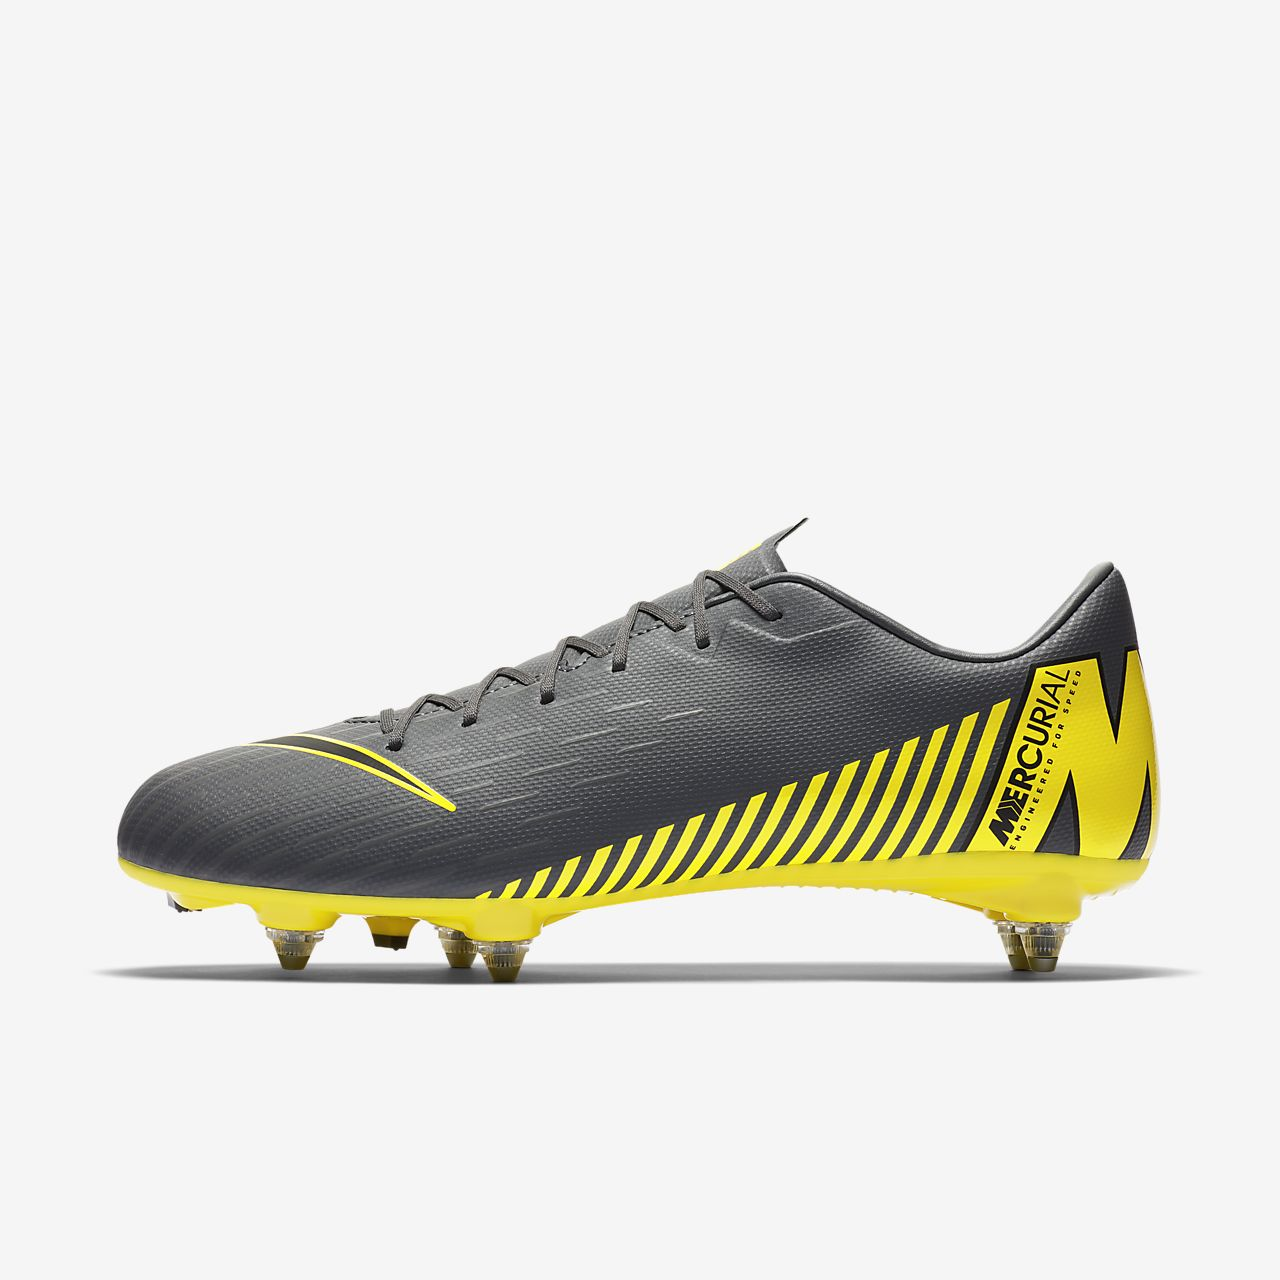 2064580f7 Nike Mercurial Vapor XII Academy SG-PRO Soft-Ground Football Boot ...